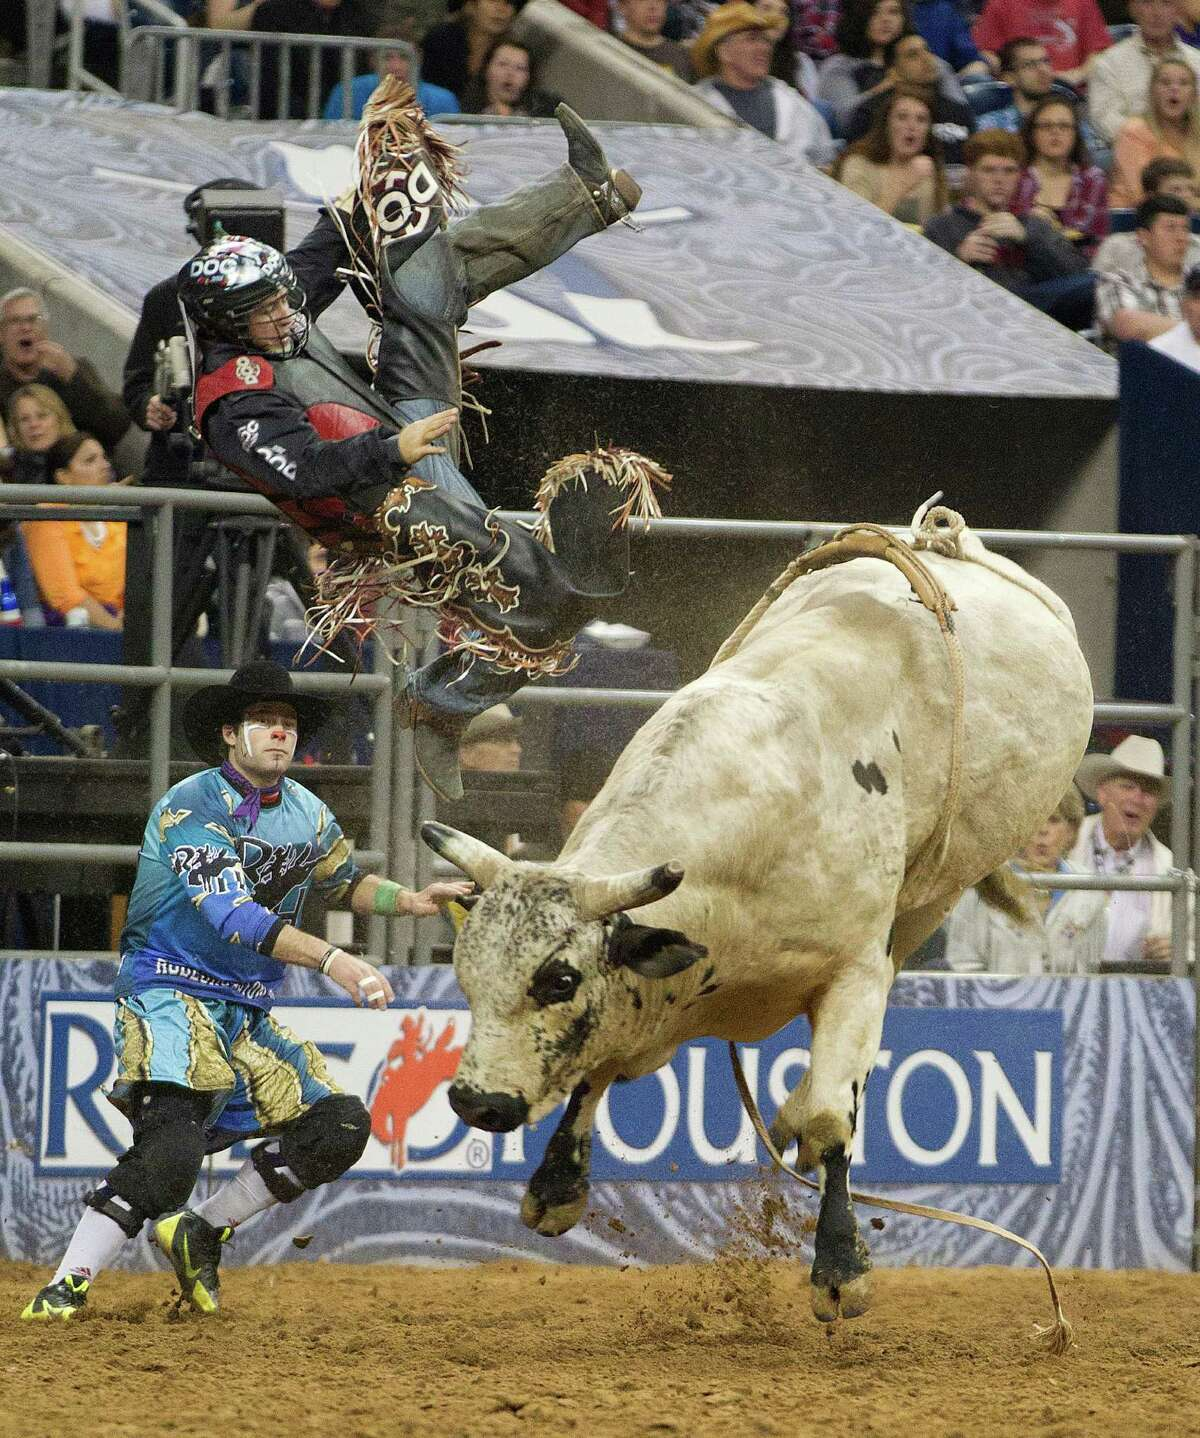 Friday Wright is thrown off his bull during the RodeoHouston Super Shootout Bull Riding event at Reliant Stadium Sunday, March 23, 2014, in Houston.